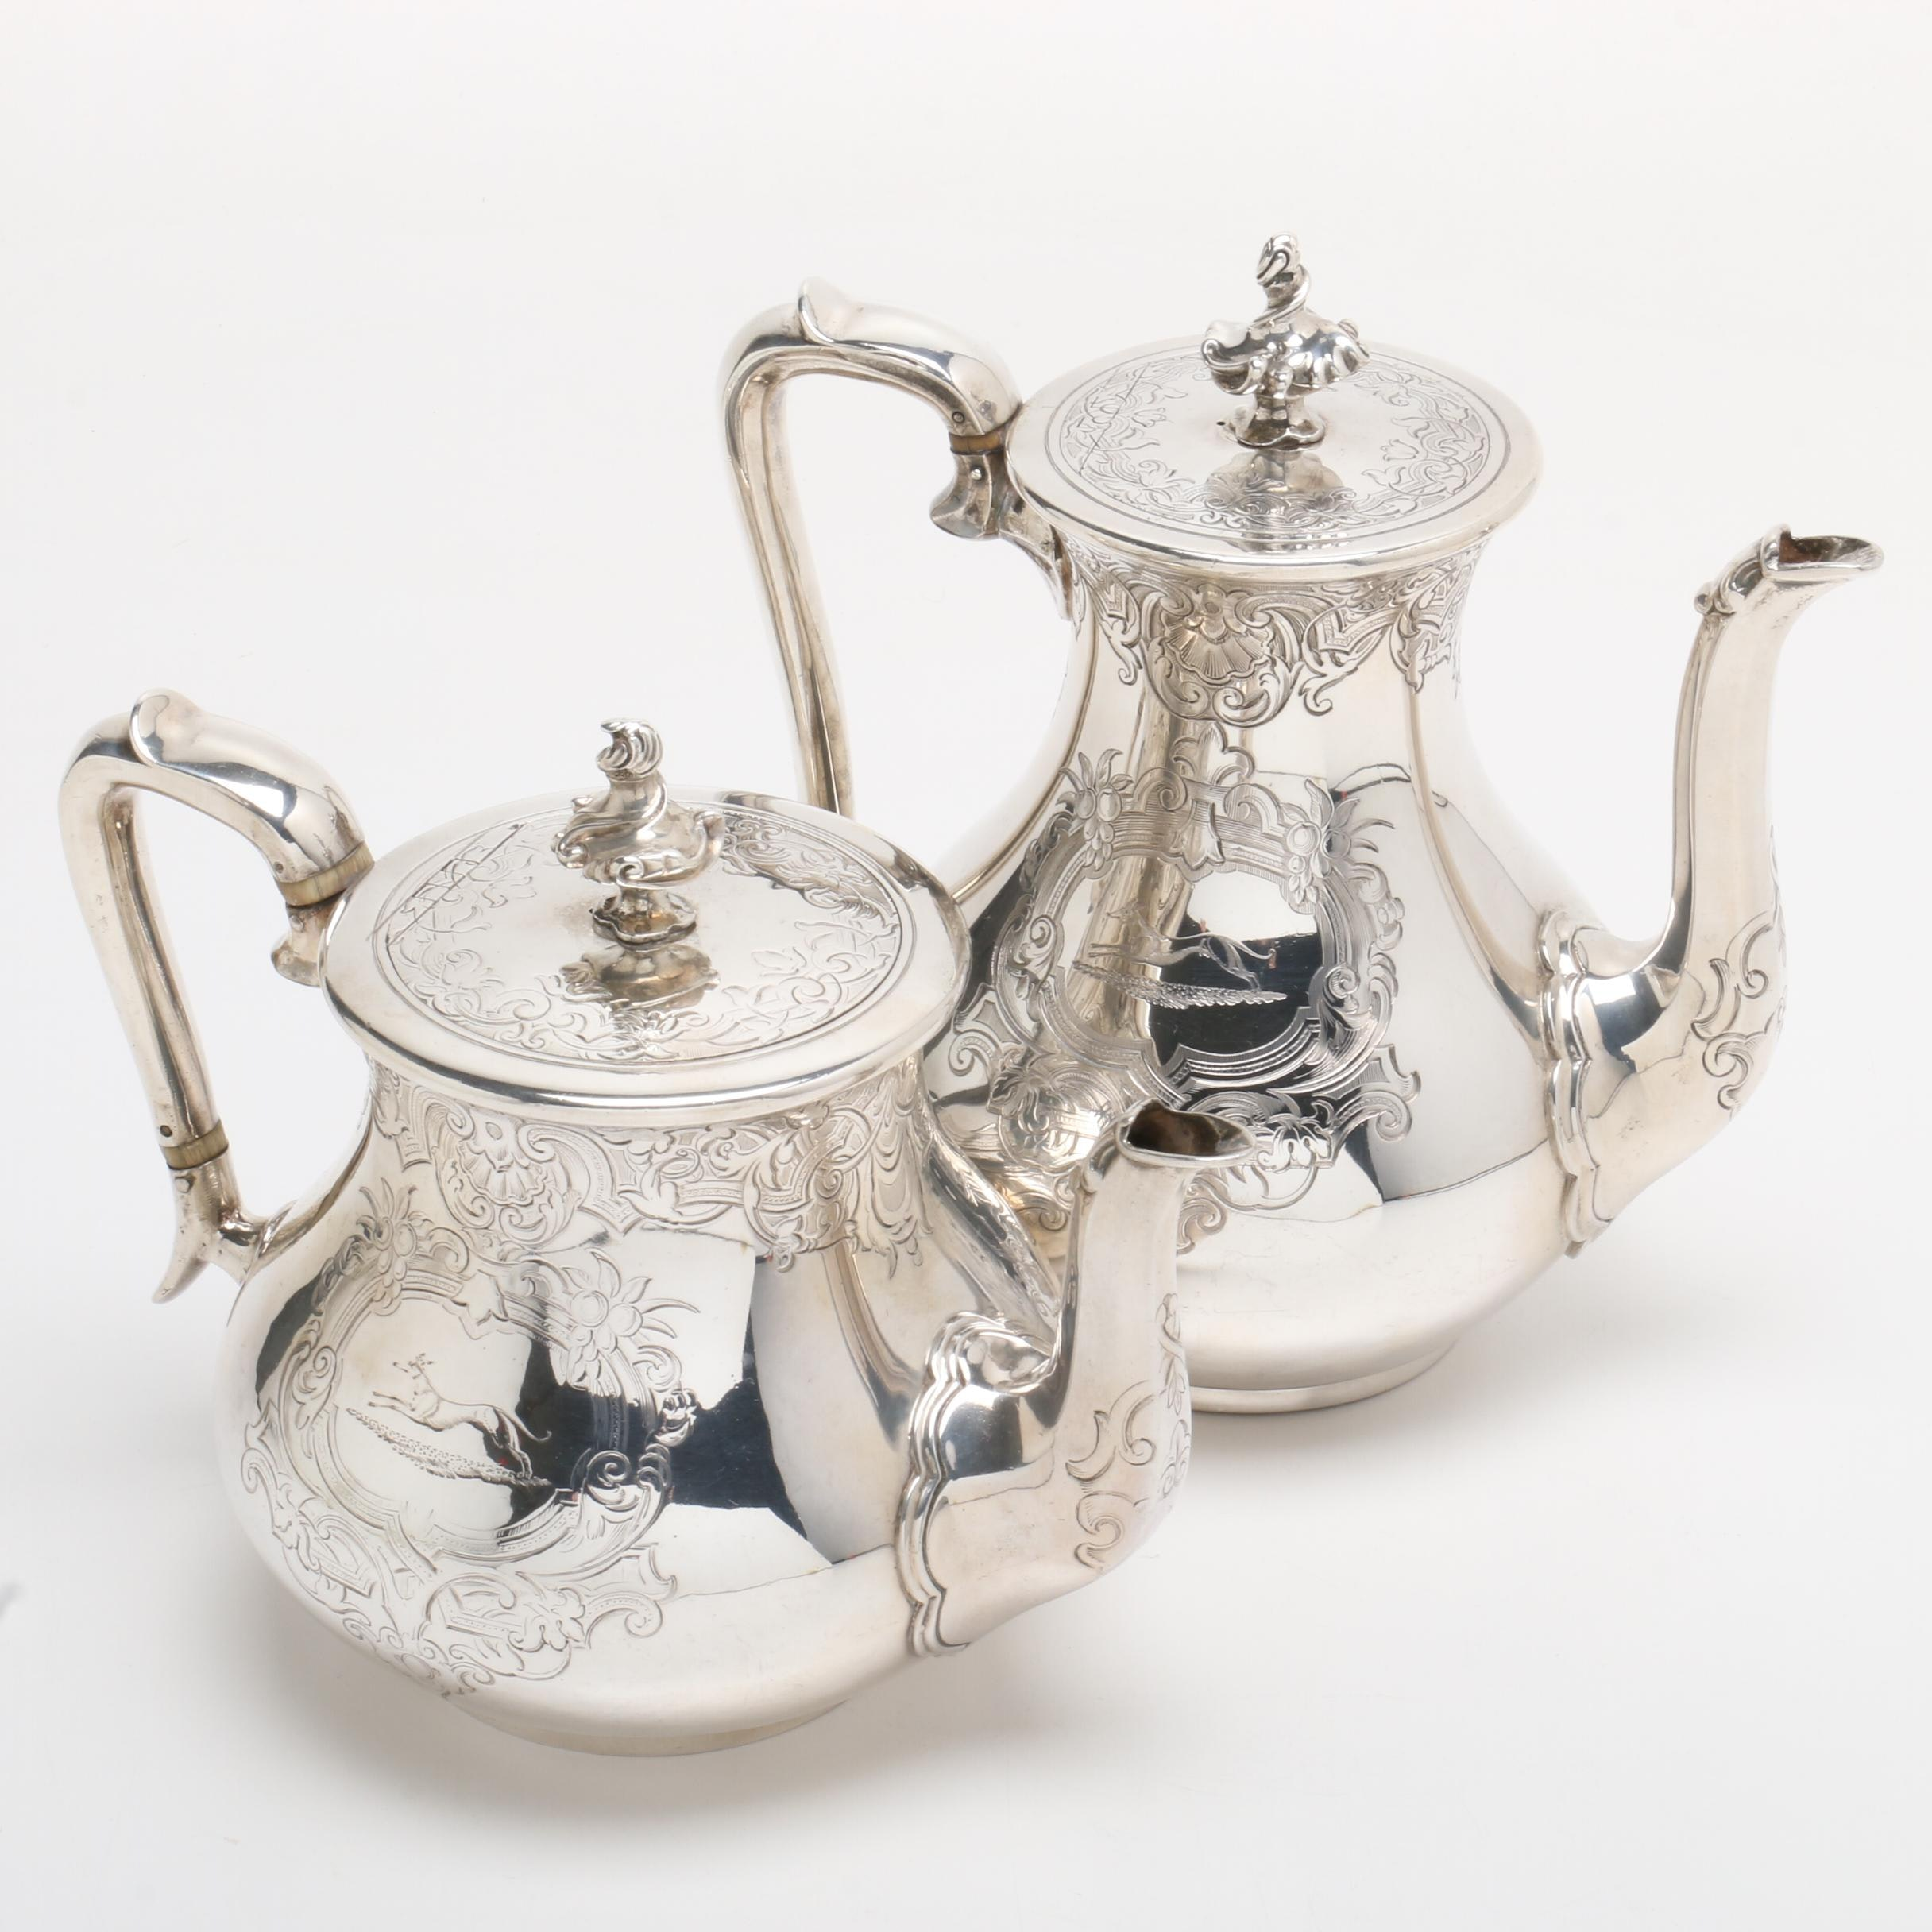 1854 Hunt & Roskell Late Storr & Mortimer Sterling Silver Coffee and Teapot